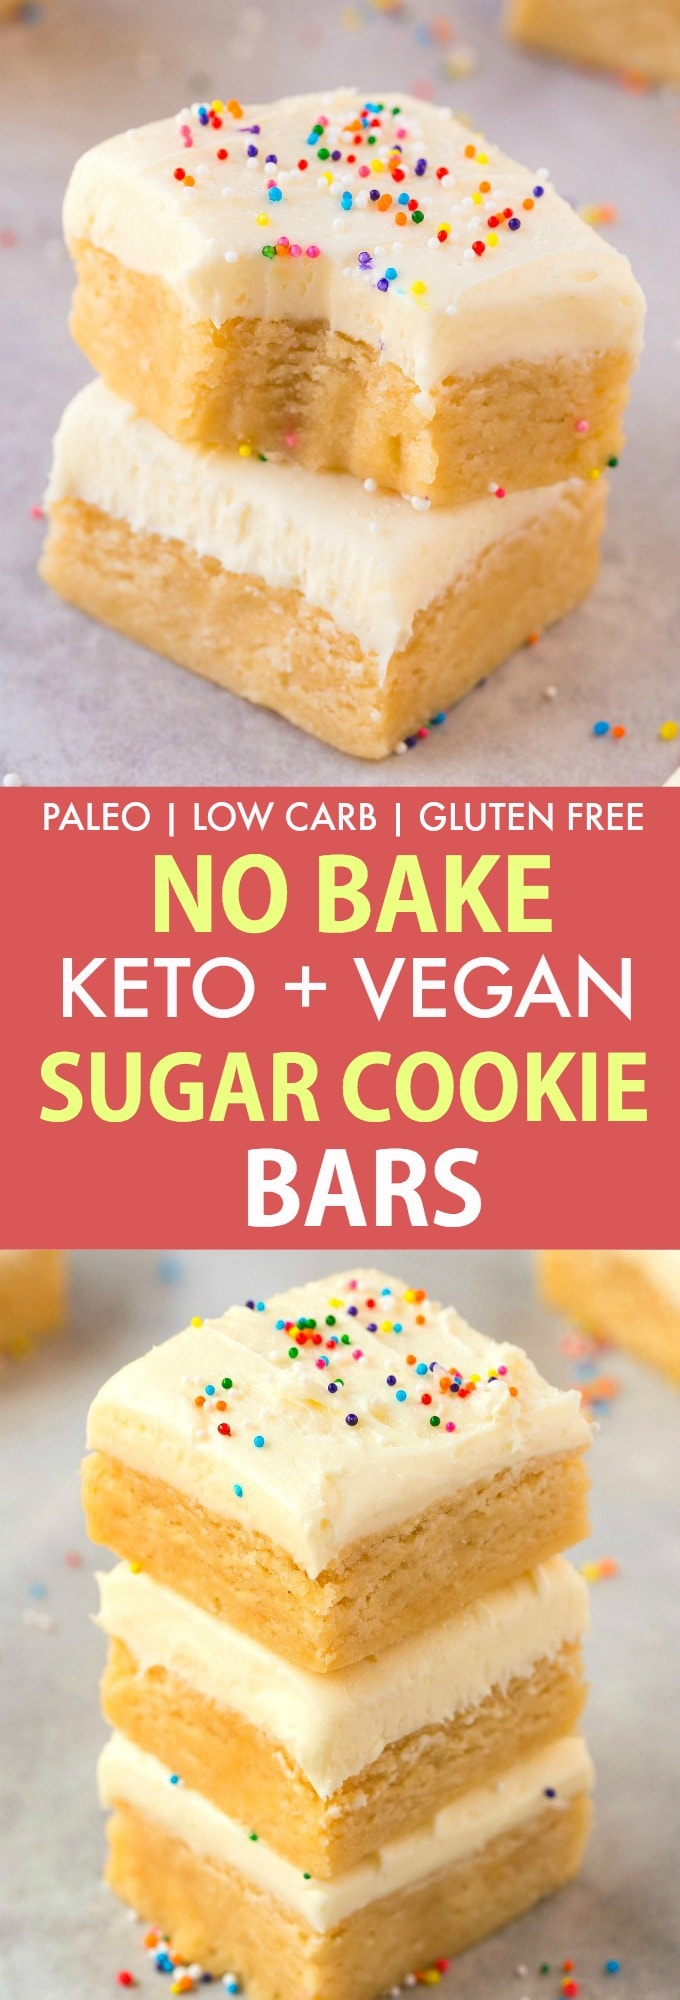 Healthy No Bake Paleo Vegan Sugar Cookie Bars